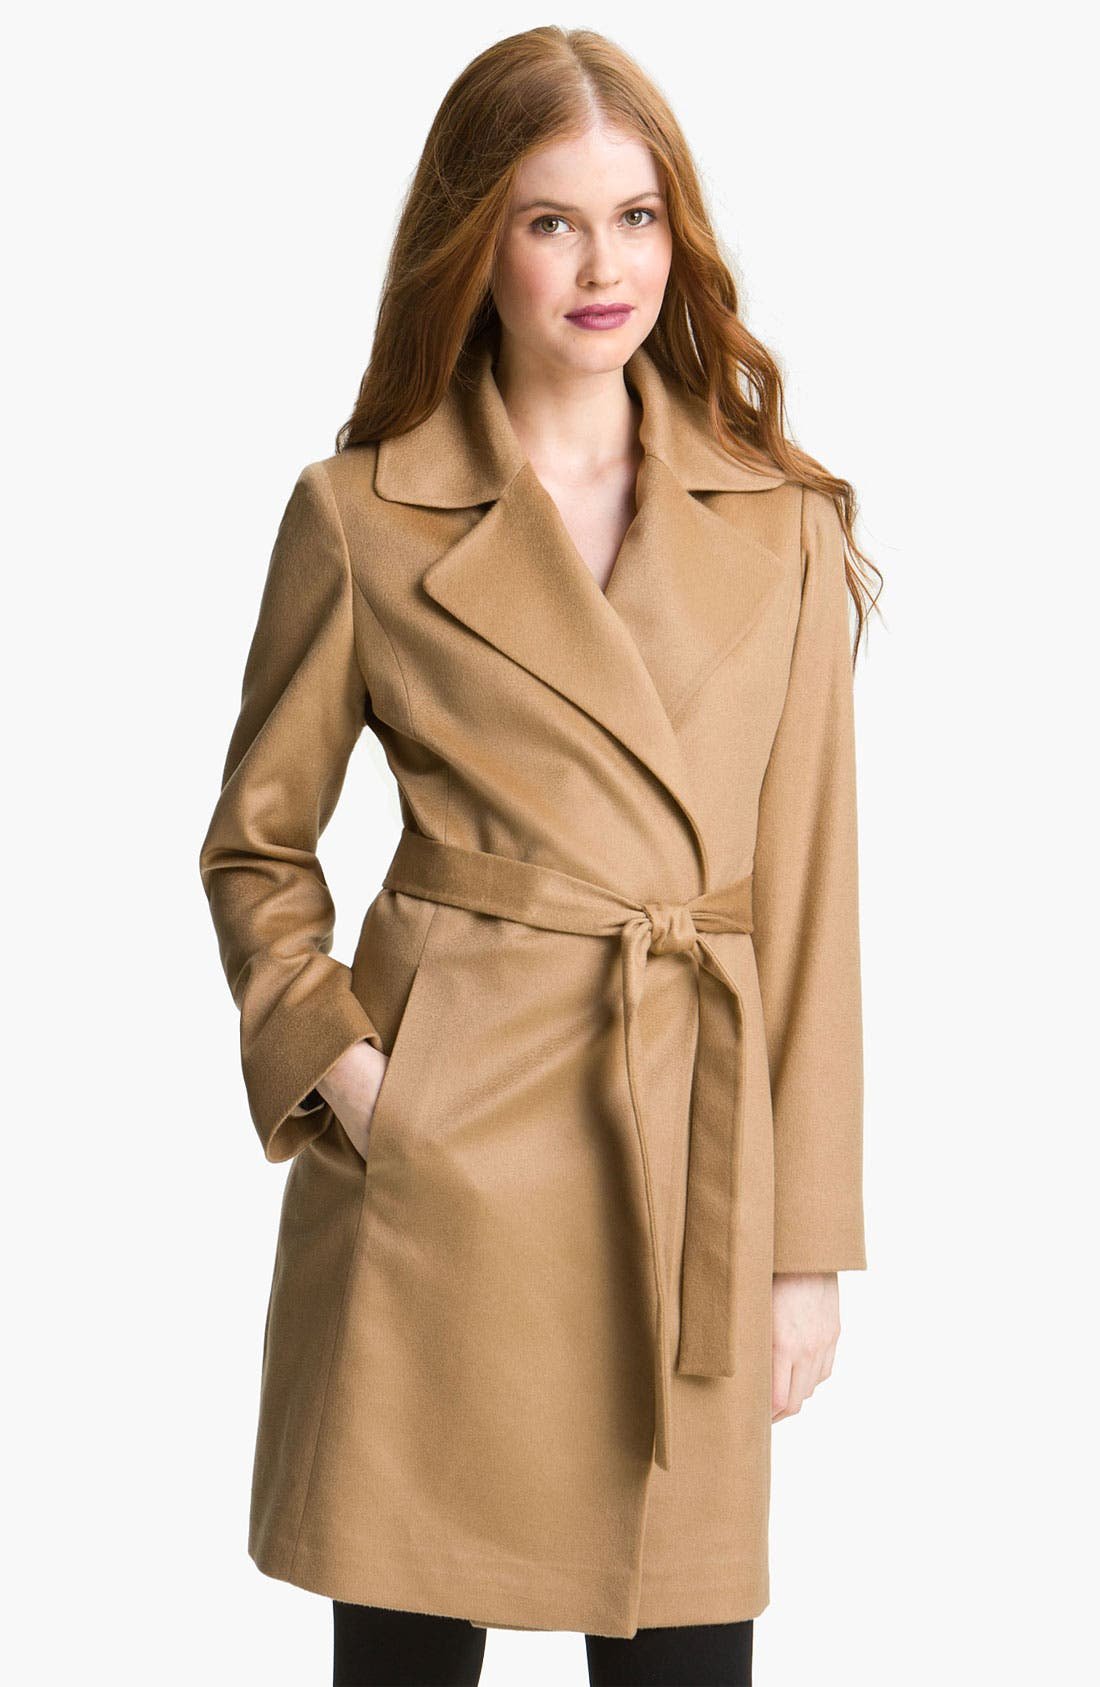 Alternate Image 1 Selected - Fleurette Lightweight Cashmere Wrap Coat (Petite)